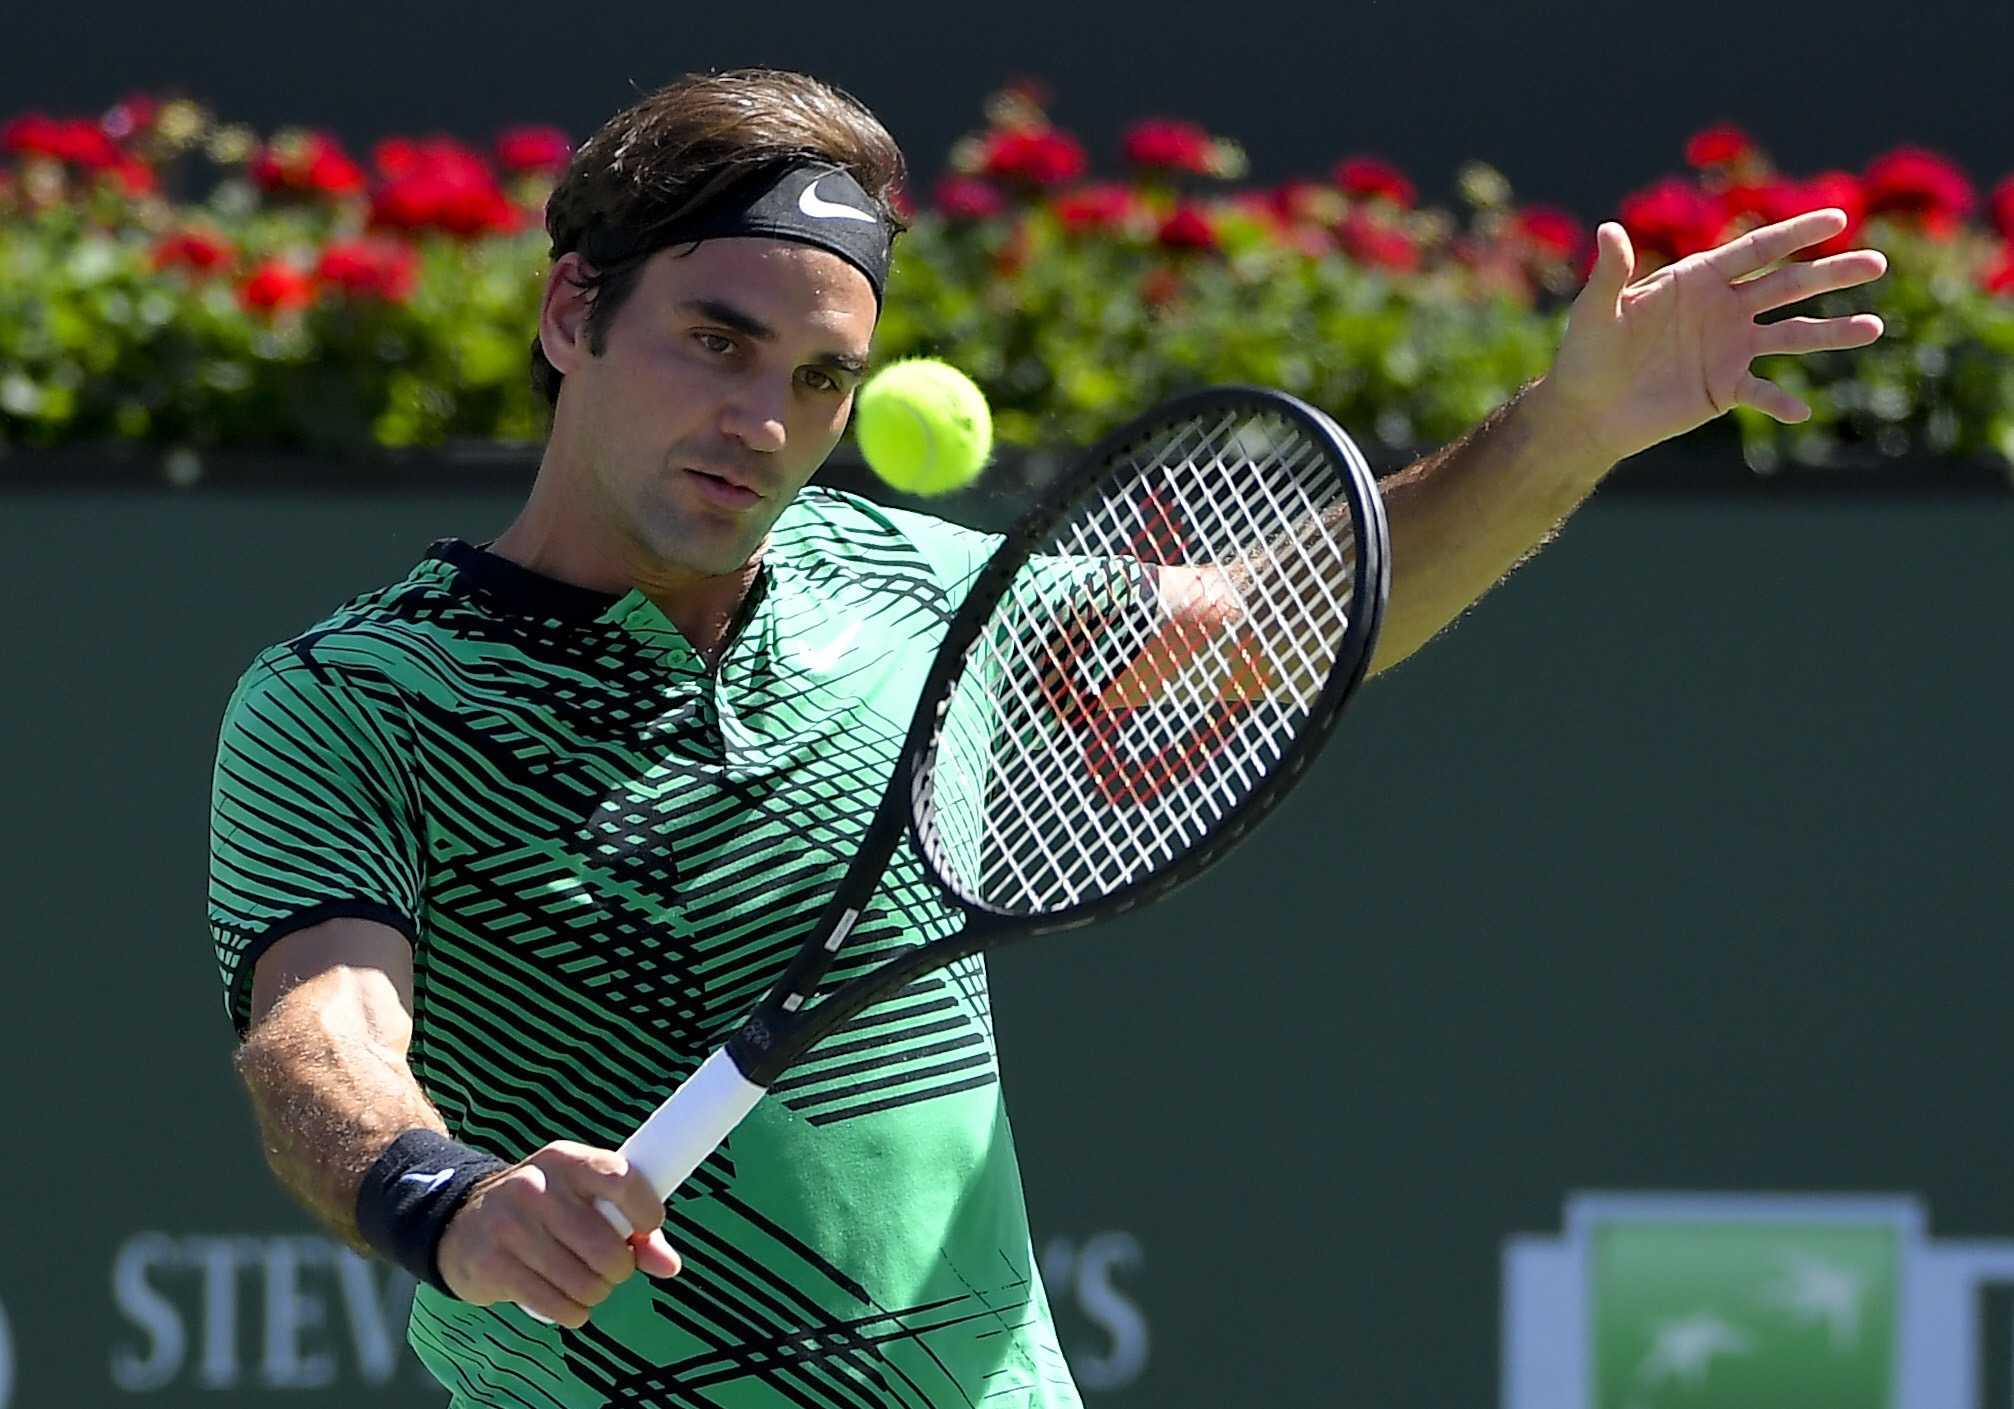 Roger Federer, of Switzerland, hits to Jack Sock during their semifinal match at the BNP Paribas Open tennis tournament, Saturday, March 18, in Indian Wells, Calif. (AP Photo/Mark J. Terrill)